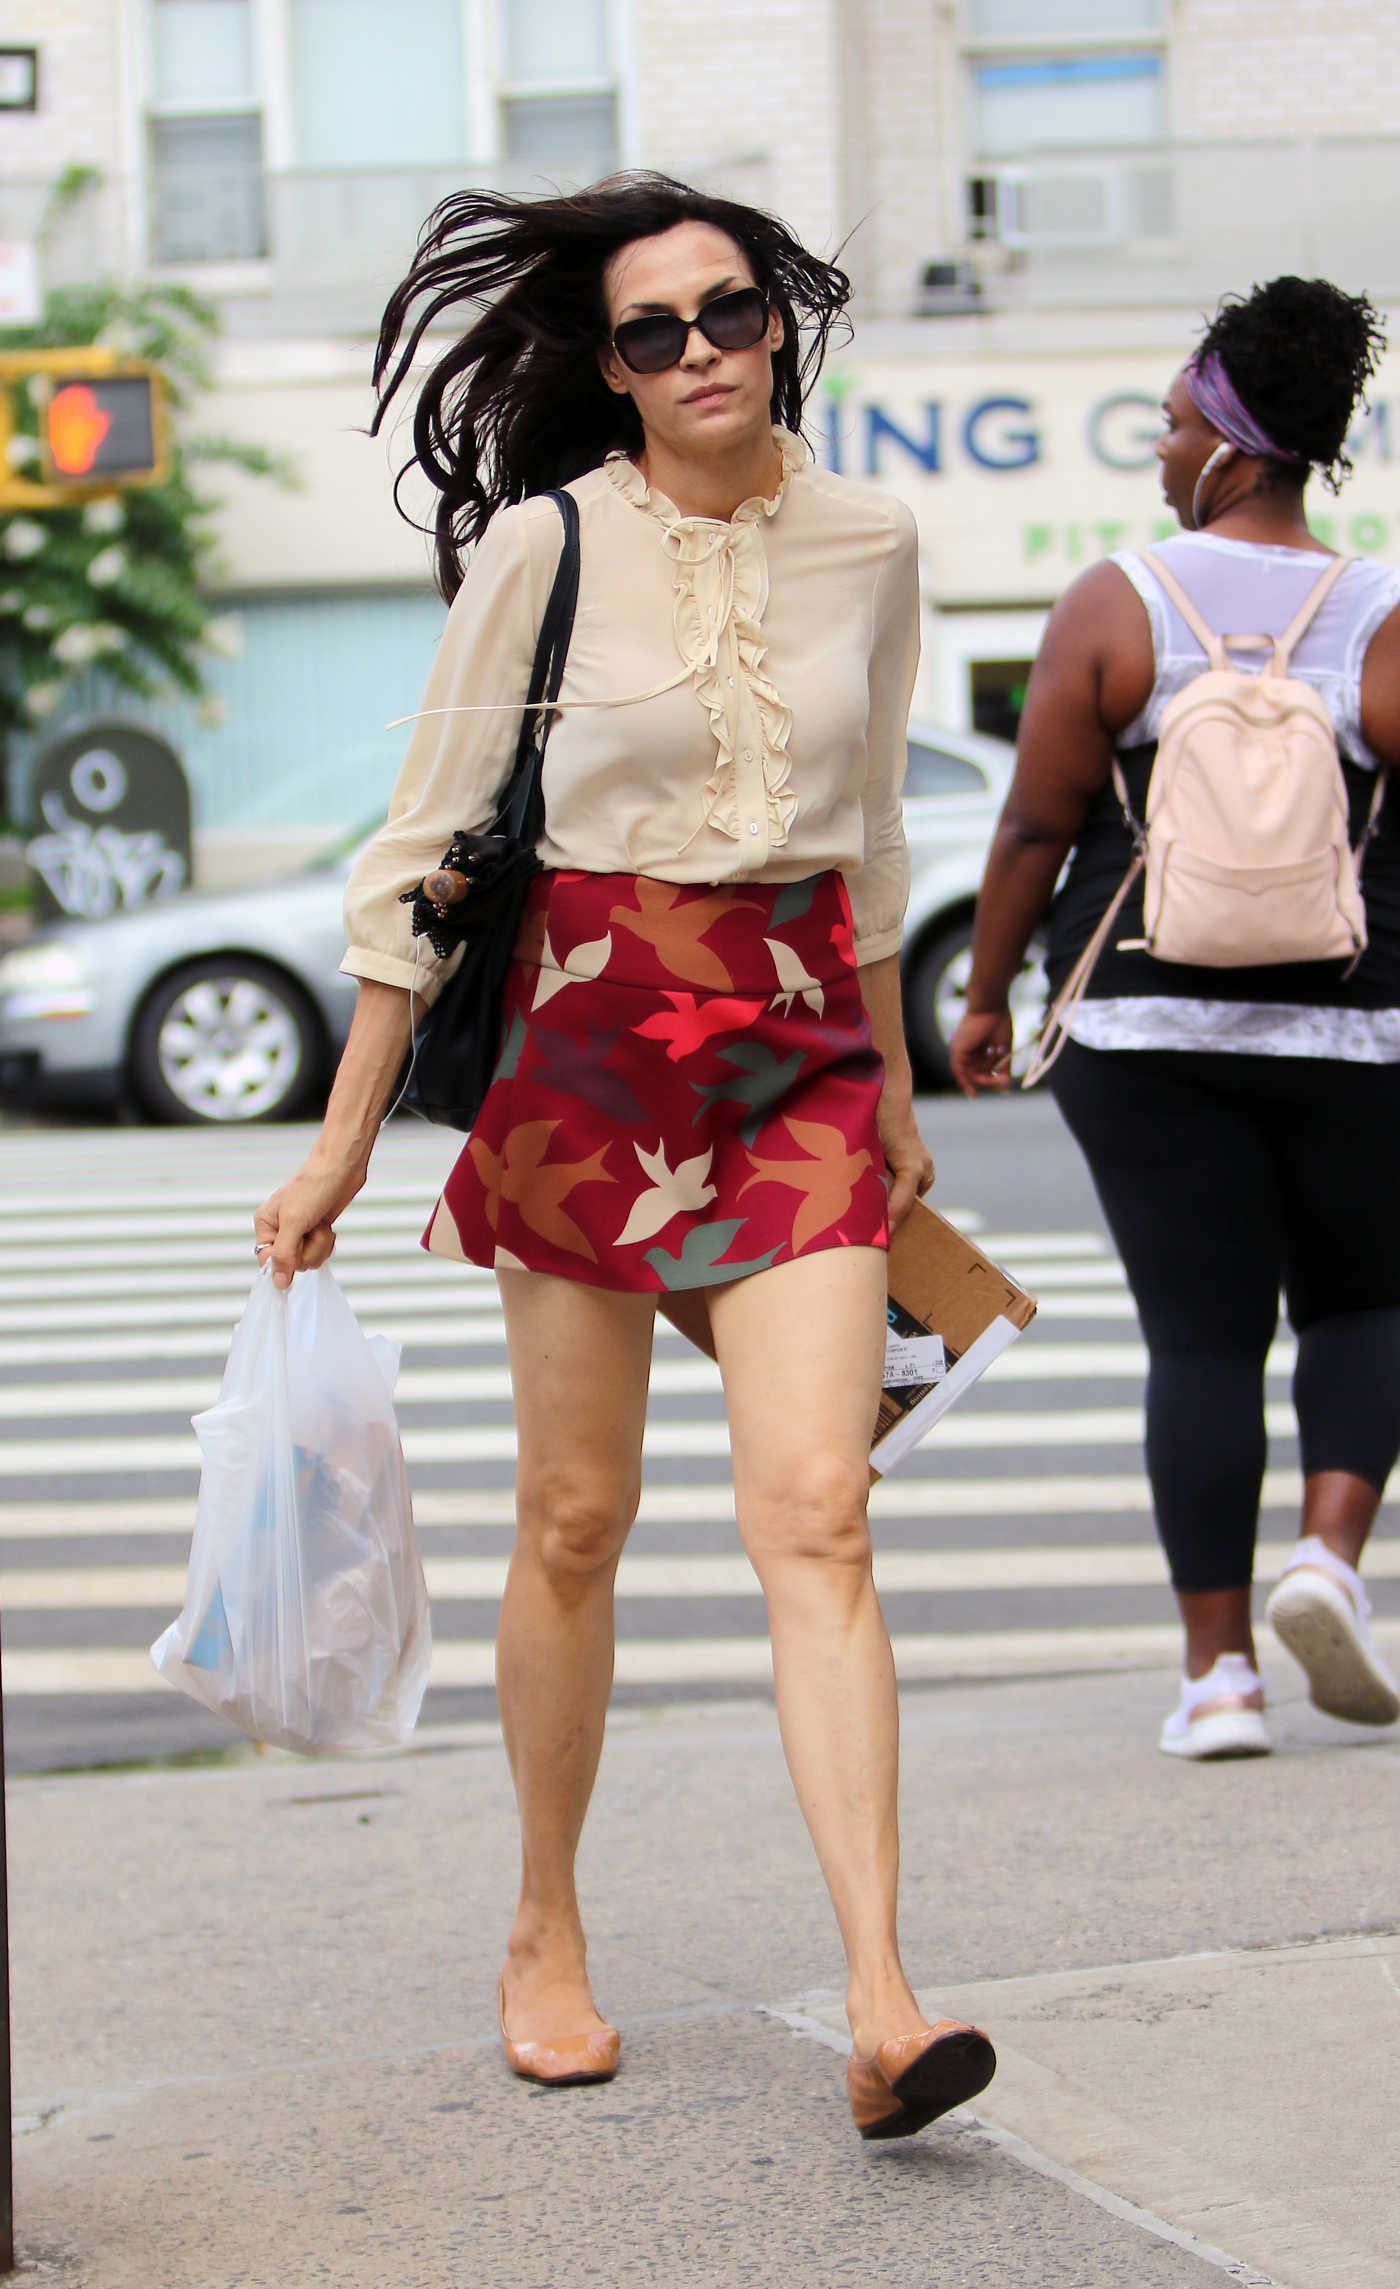 Famke Janssen in a Short Bird Print Skirt Out in New York City 07/24/2018